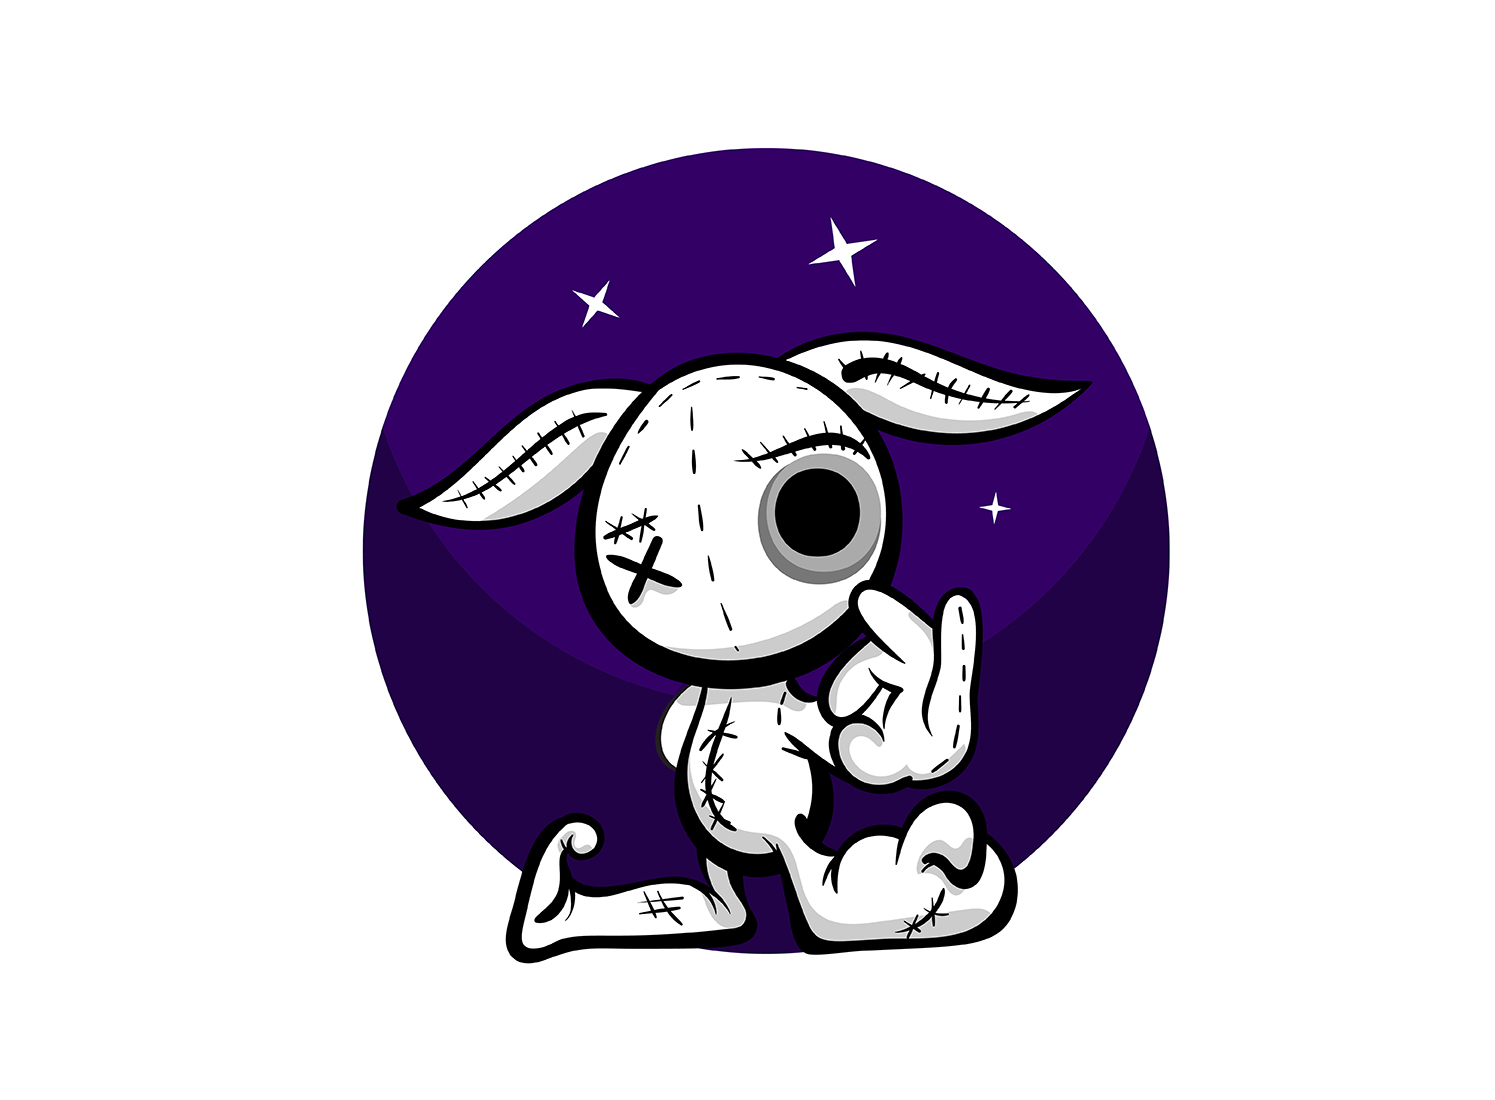 Download Free Cute Evil Rabbit Halloween Woodoo Toy Graphic By Kapitosh for Cricut Explore, Silhouette and other cutting machines.